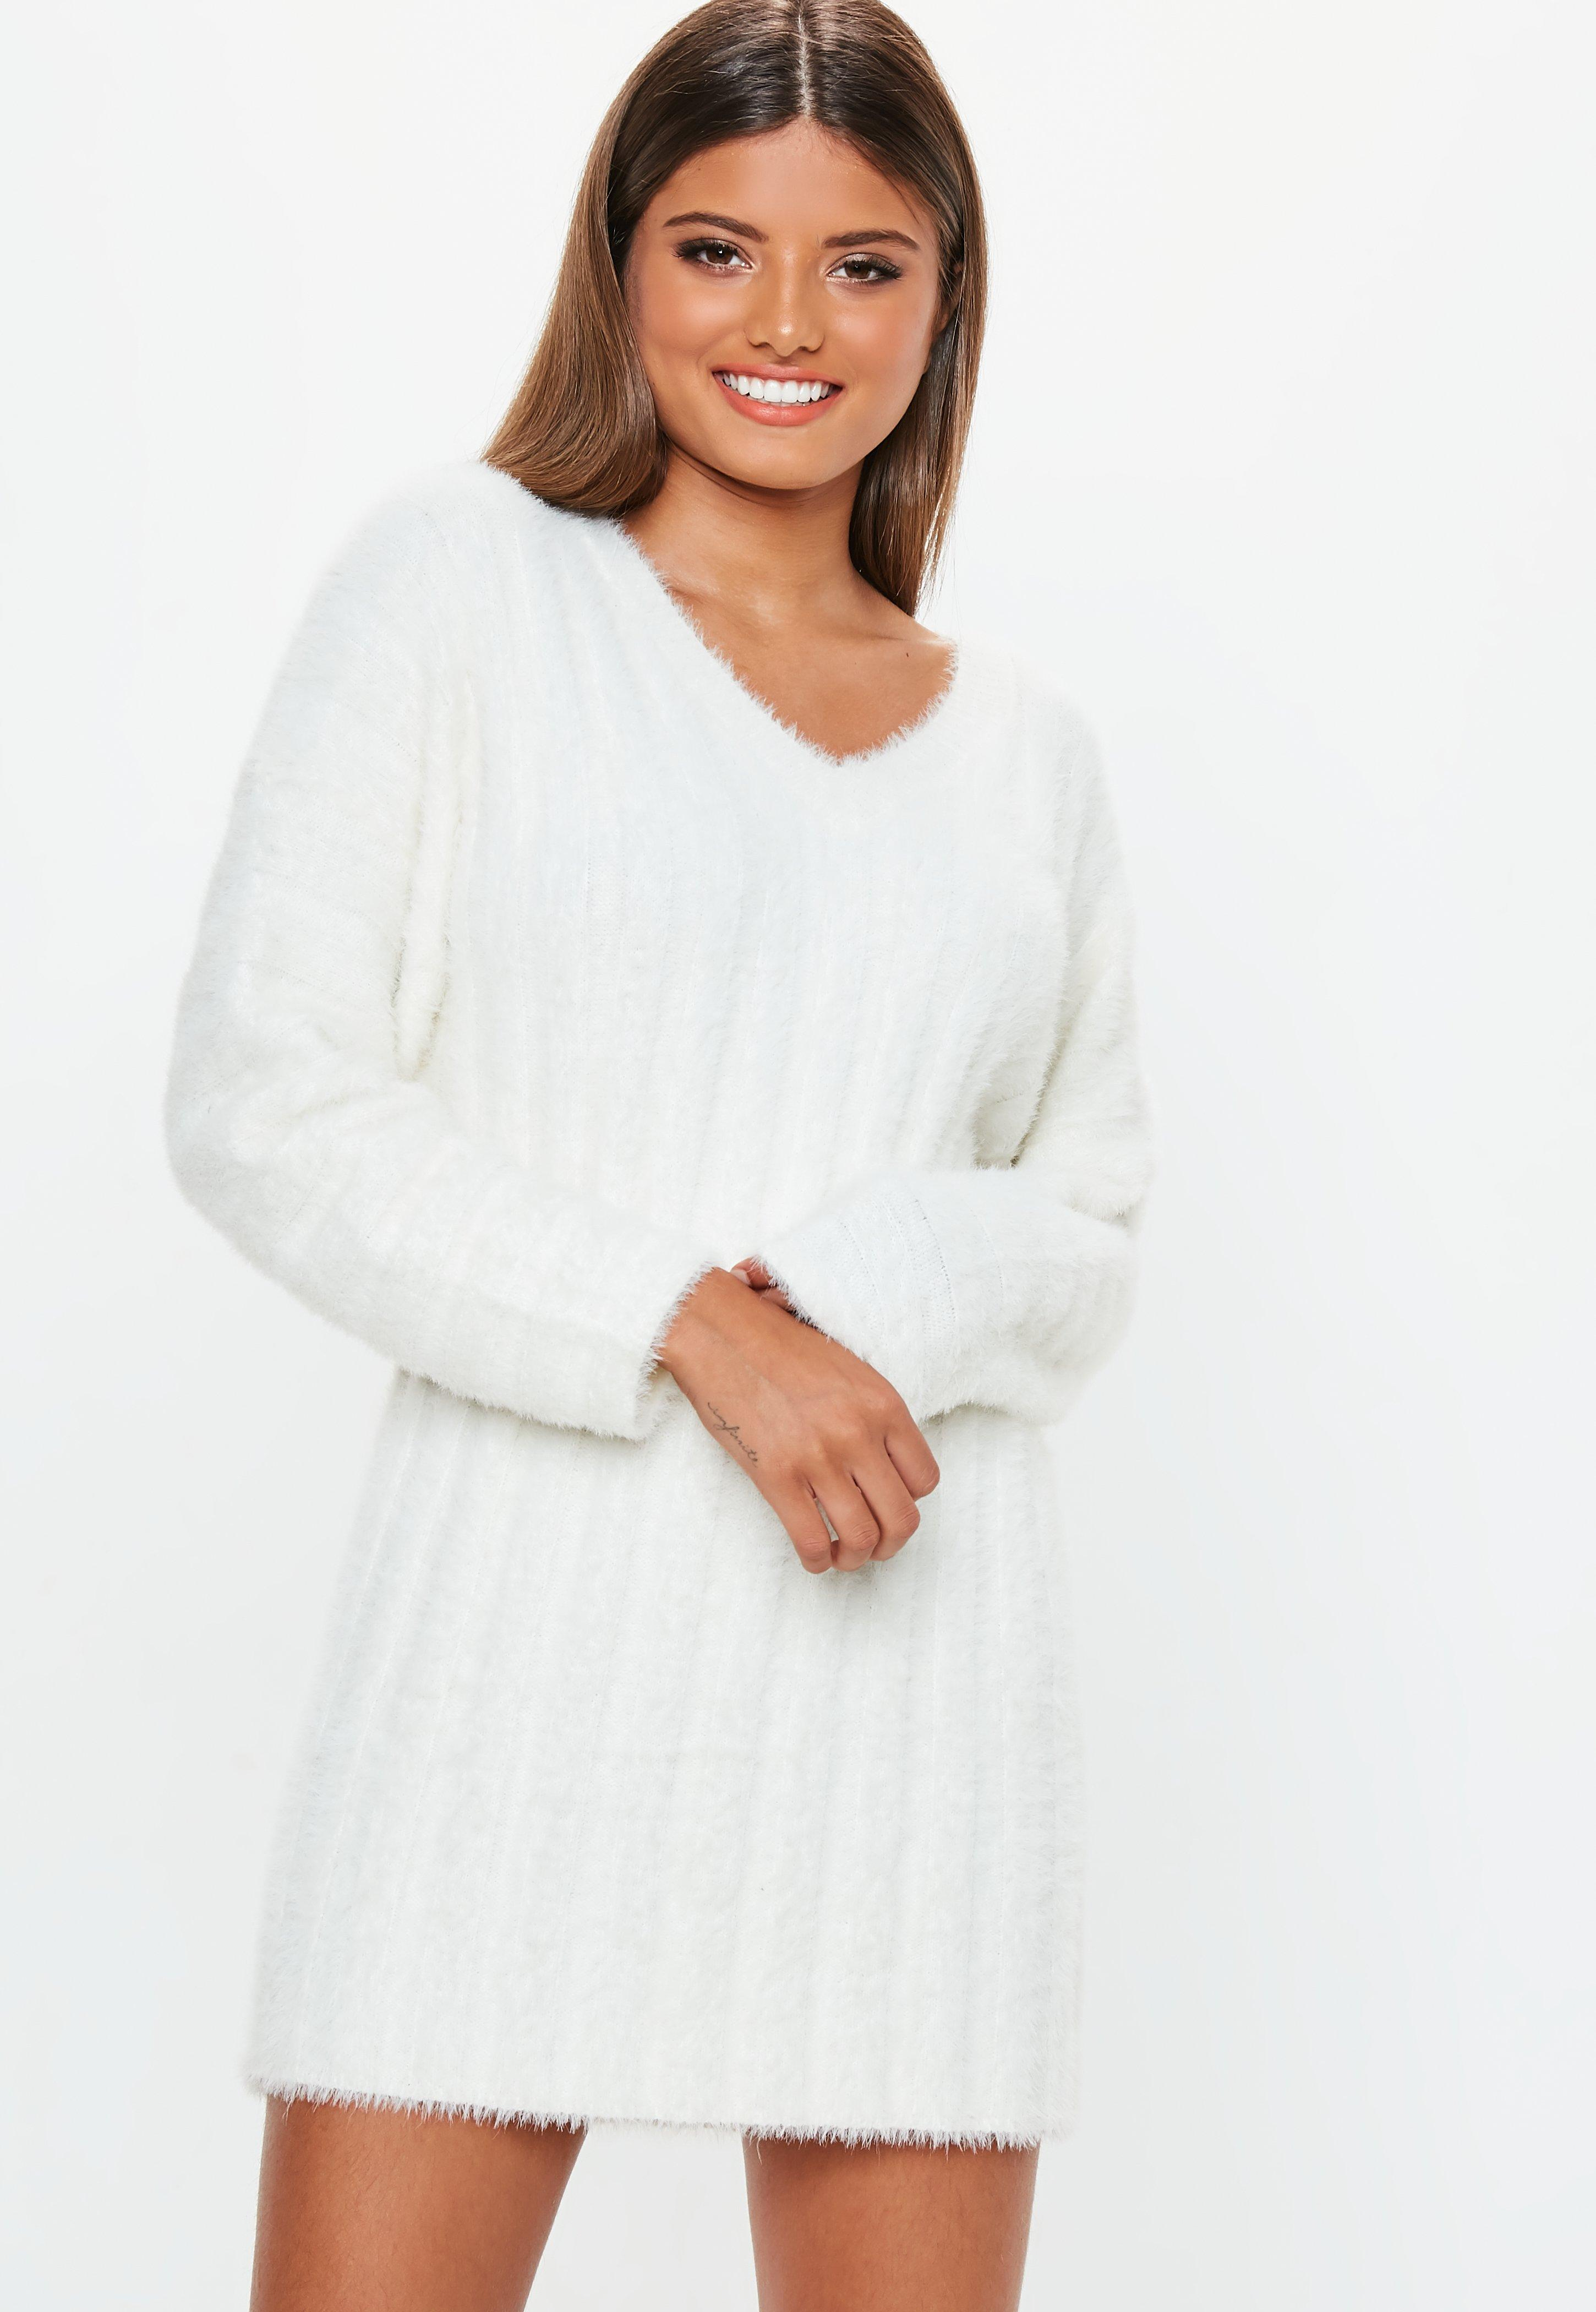 Sweater Dresses Oversized Knitted Dresses Missguided